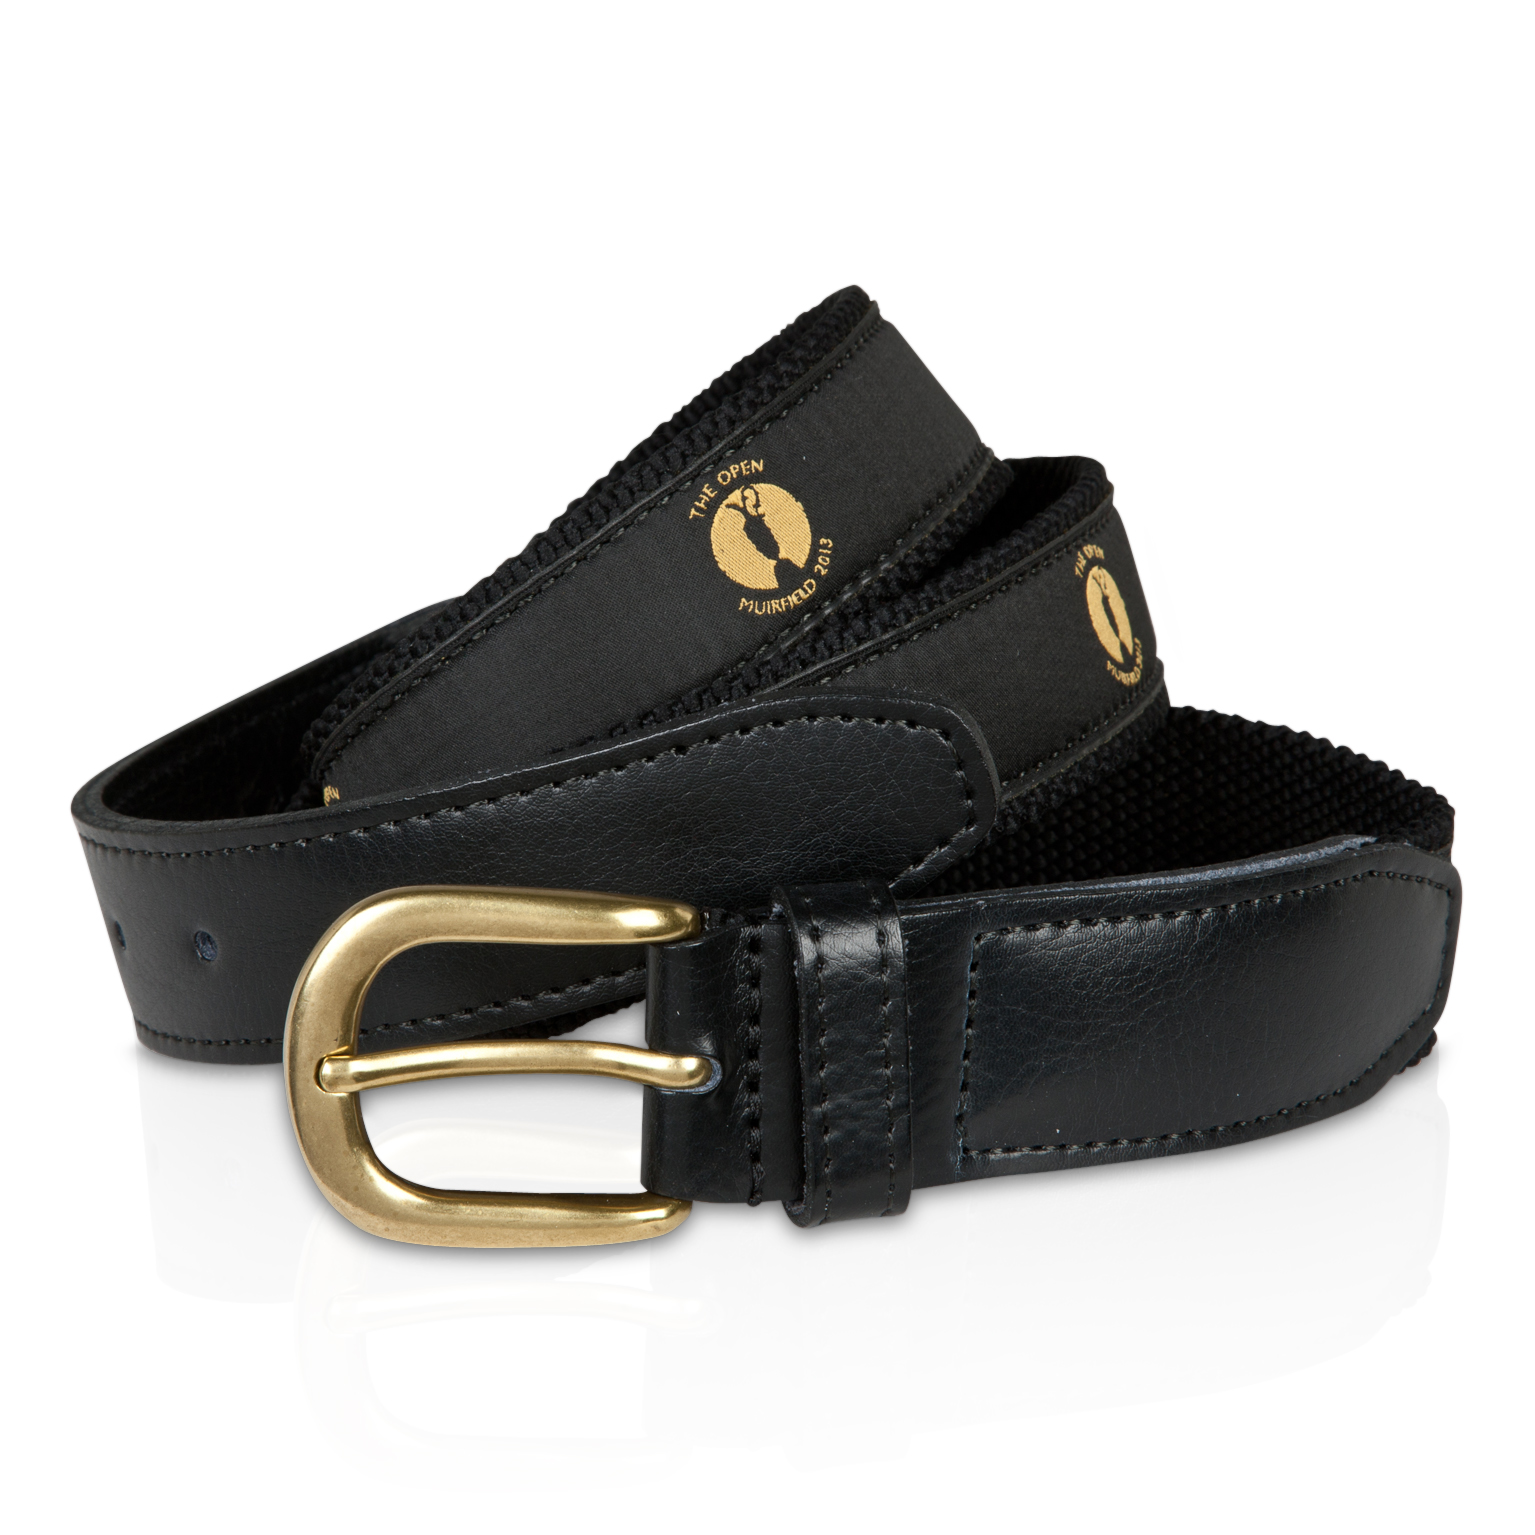 The Open Championship Muirfield Webbing Belt - Black/Gold Ribbon Black